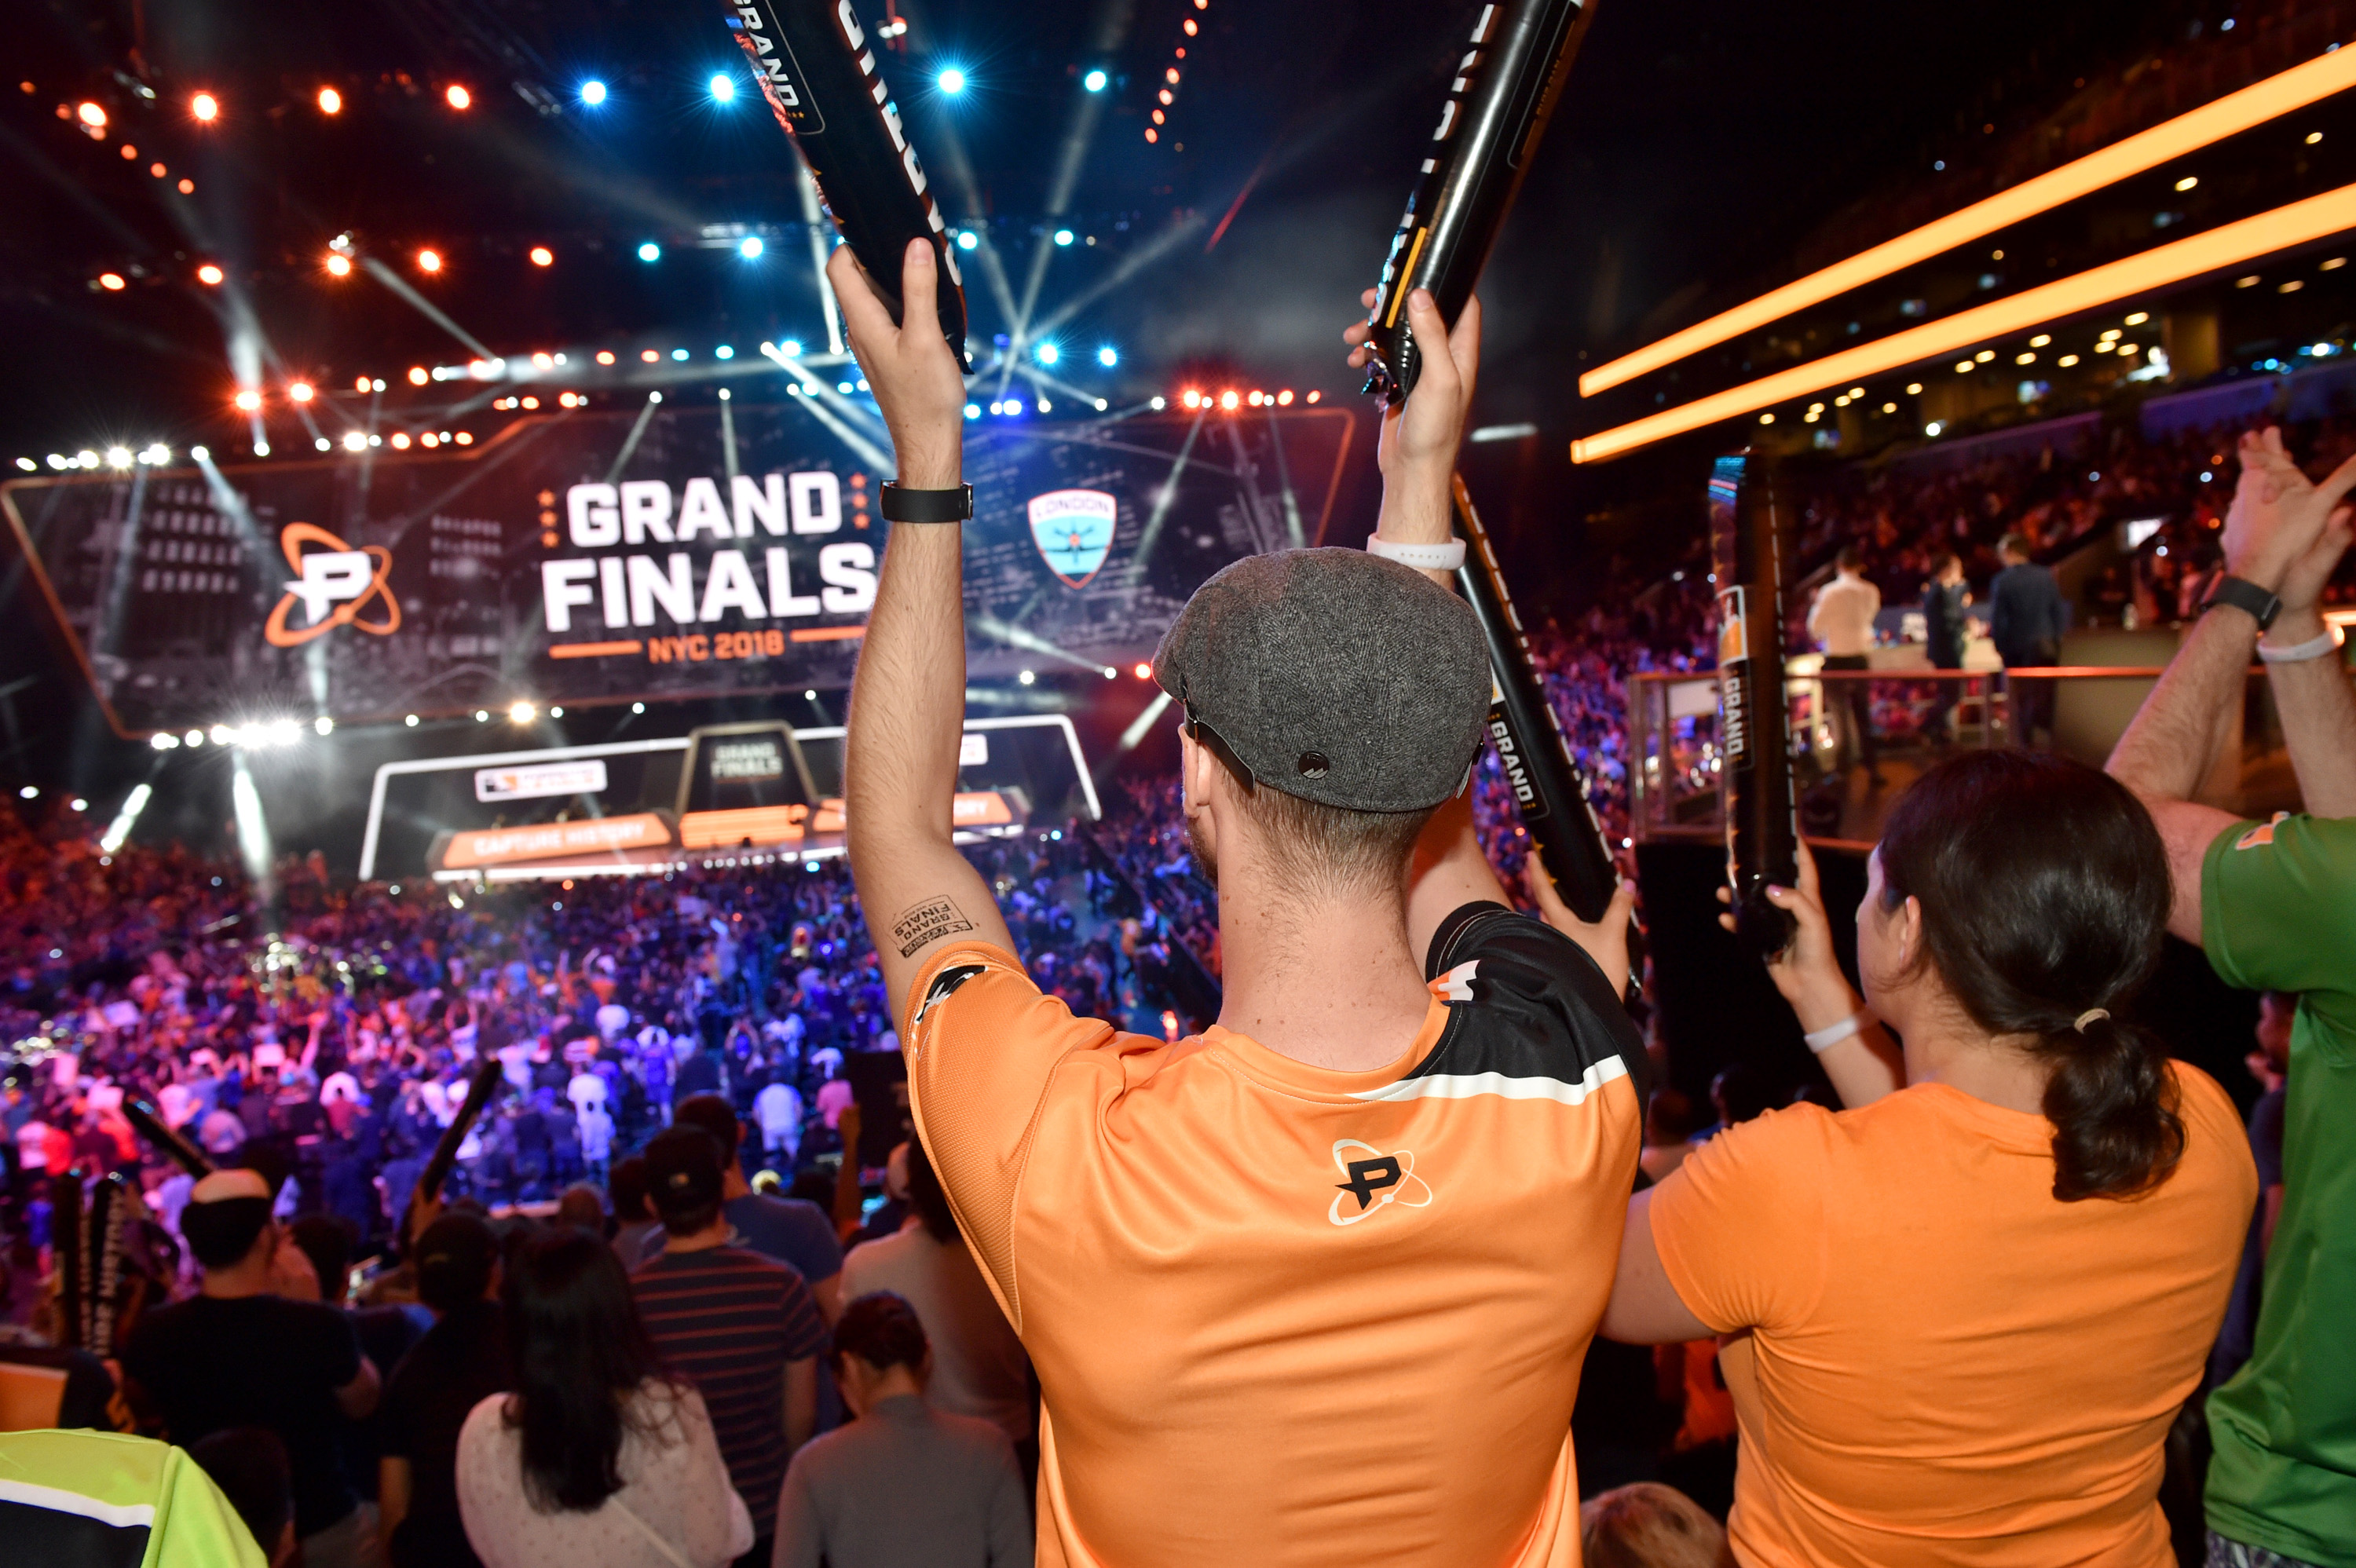 fans cheering at the Overwatch League Grand Finals